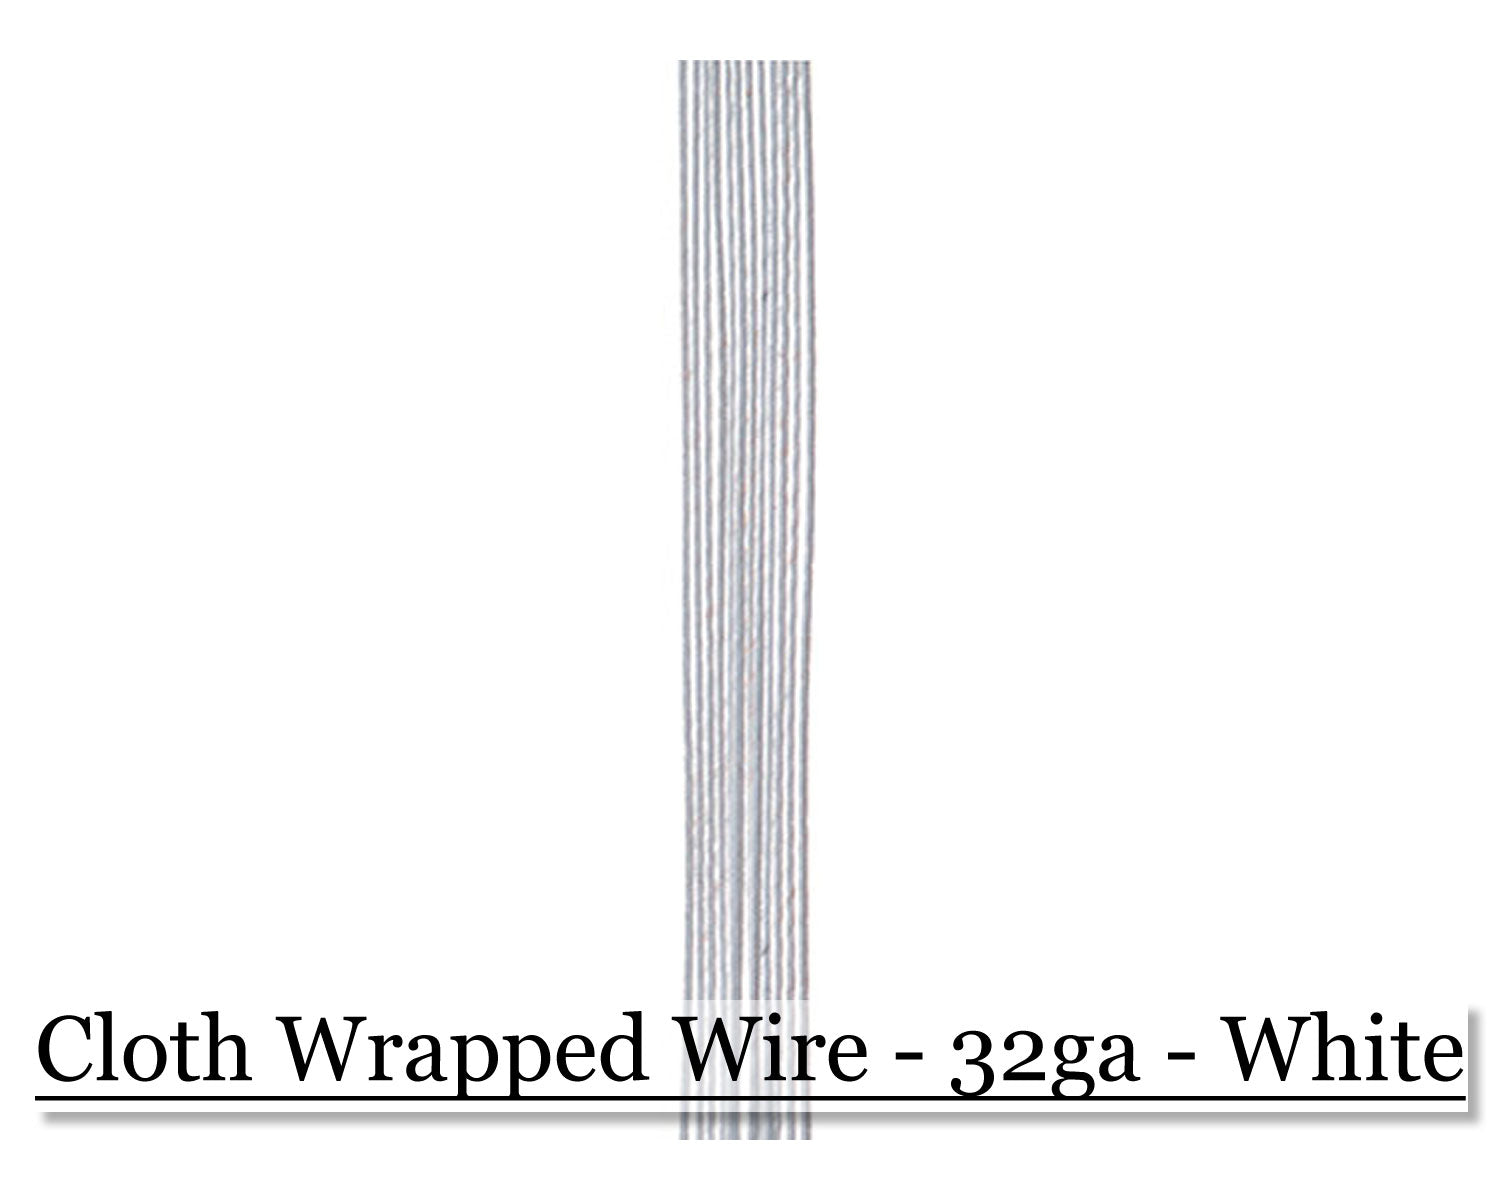 Cloth wrapped wire 32ga - White